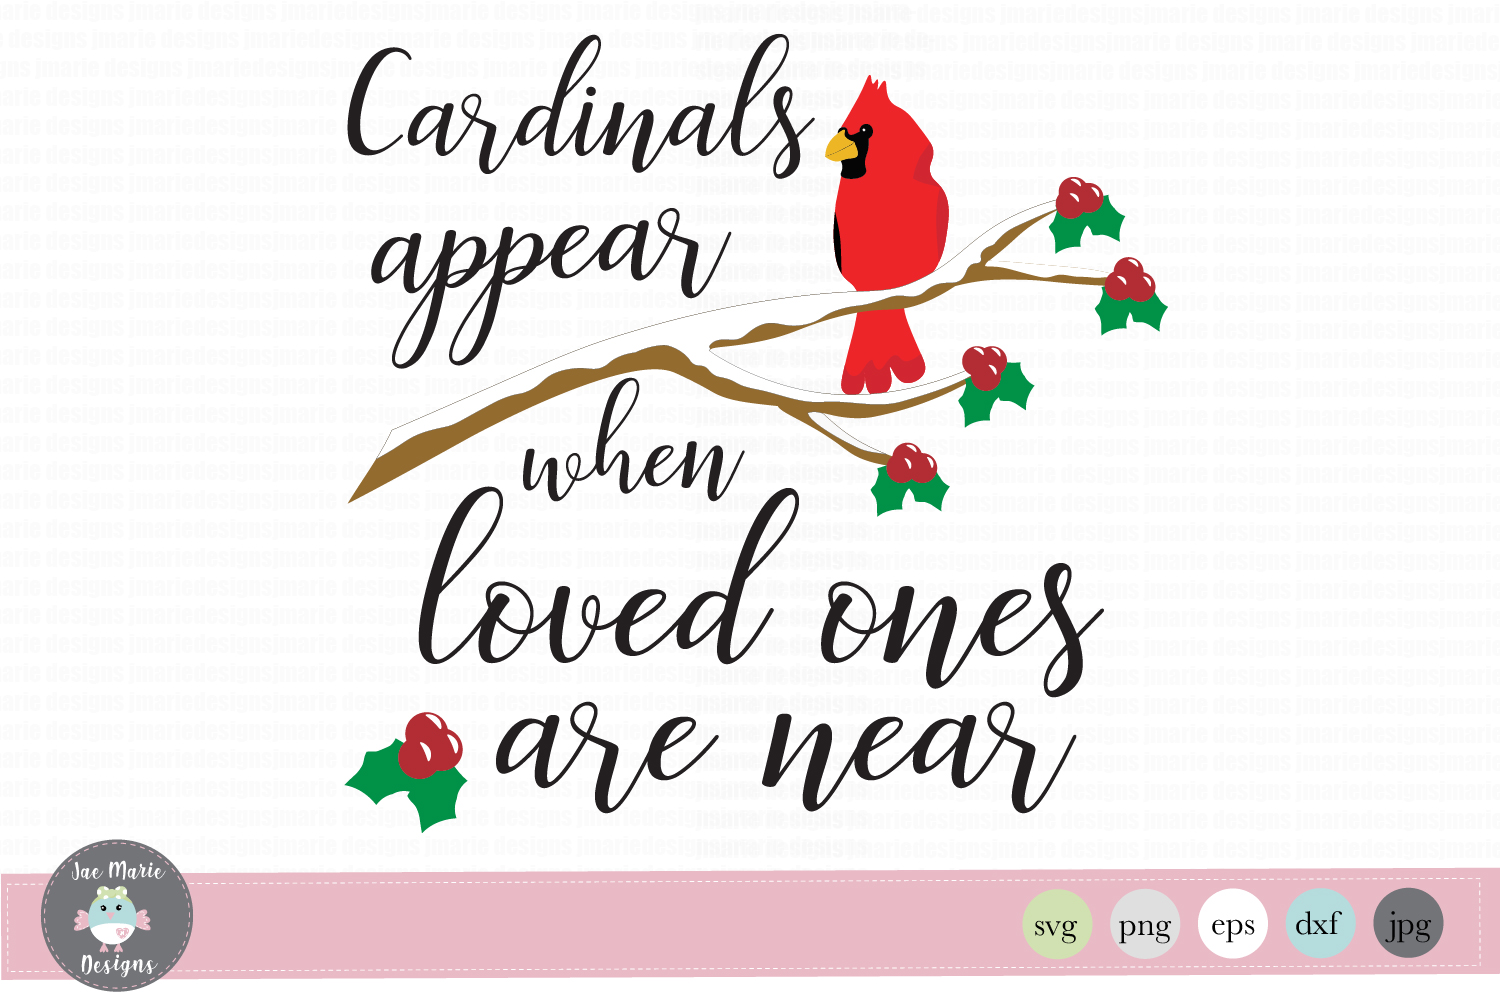 Download Free Cardinals Appear When Loved Ones Are Near Graphic By Thejaemarie for Cricut Explore, Silhouette and other cutting machines.